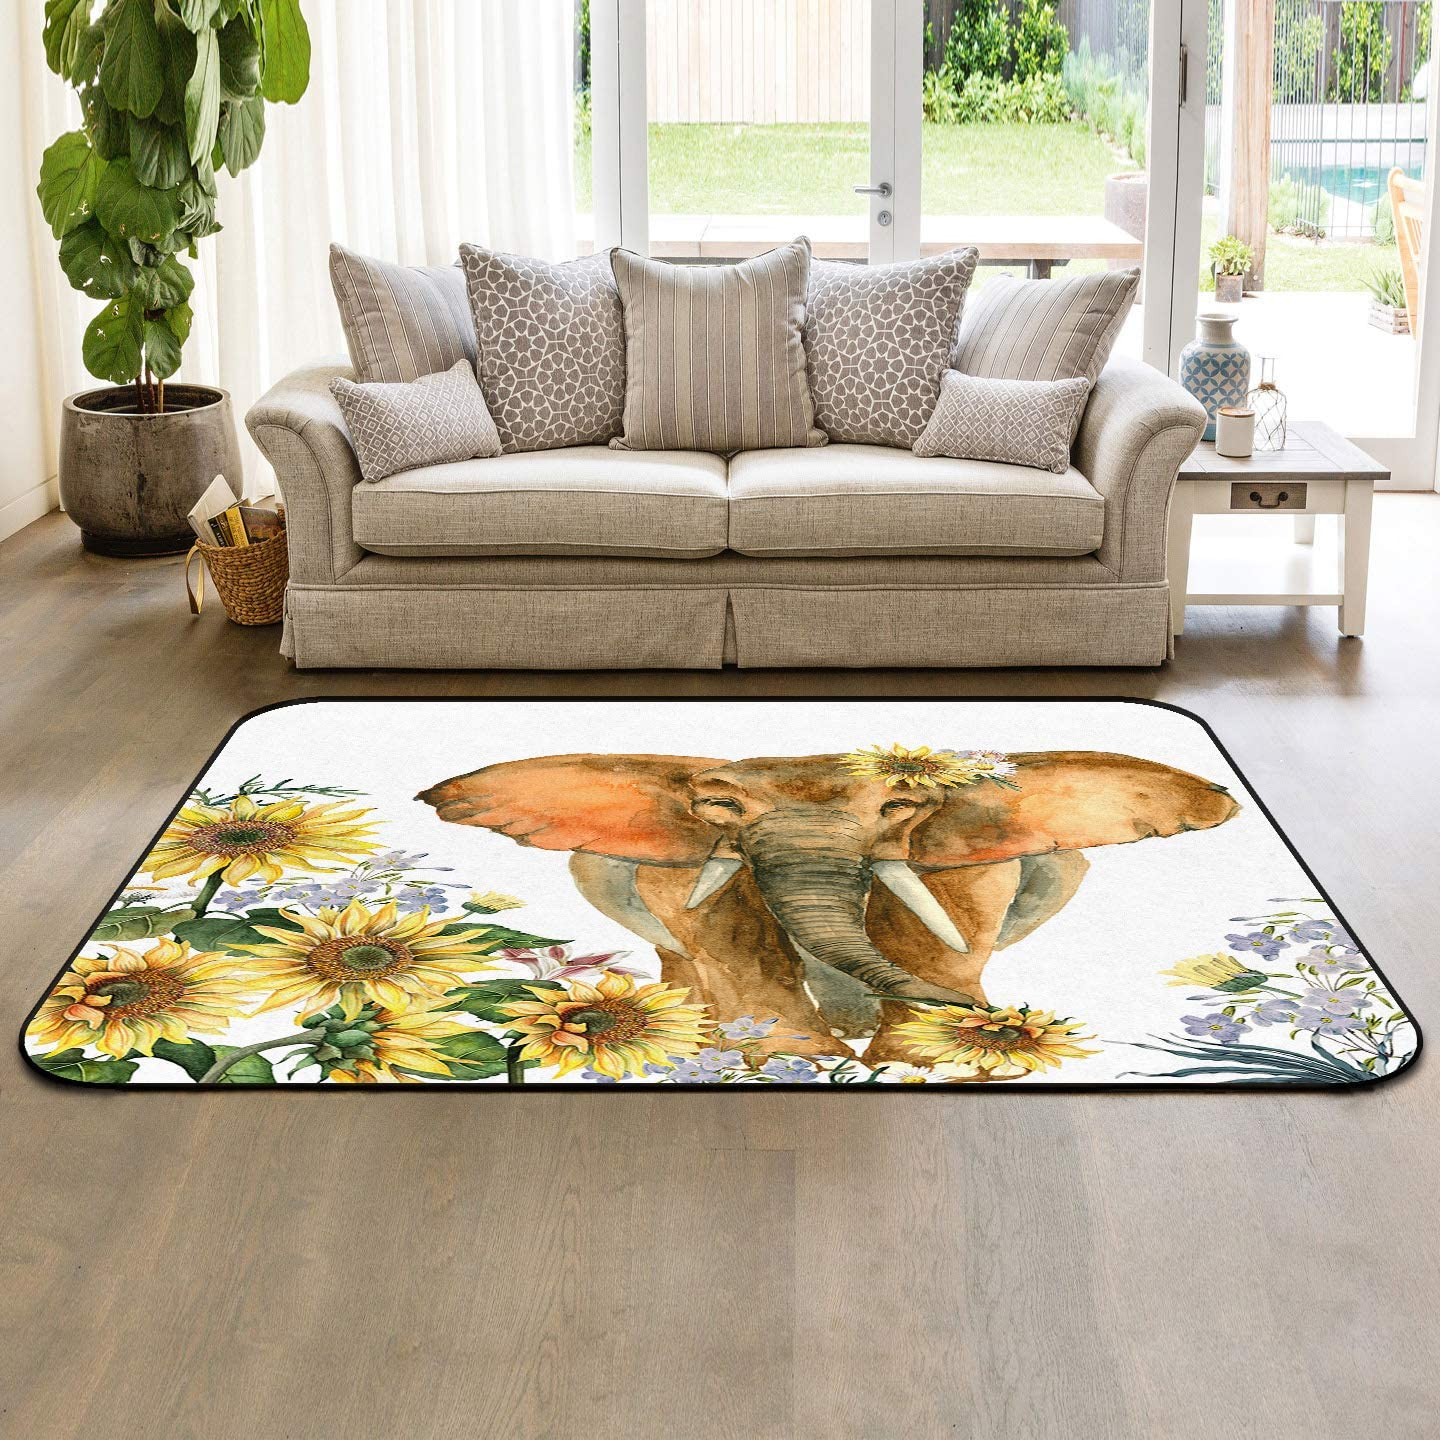 cheap Soft Area Rugs for Bedroom with Elephant Sunflower Washable Rug List price